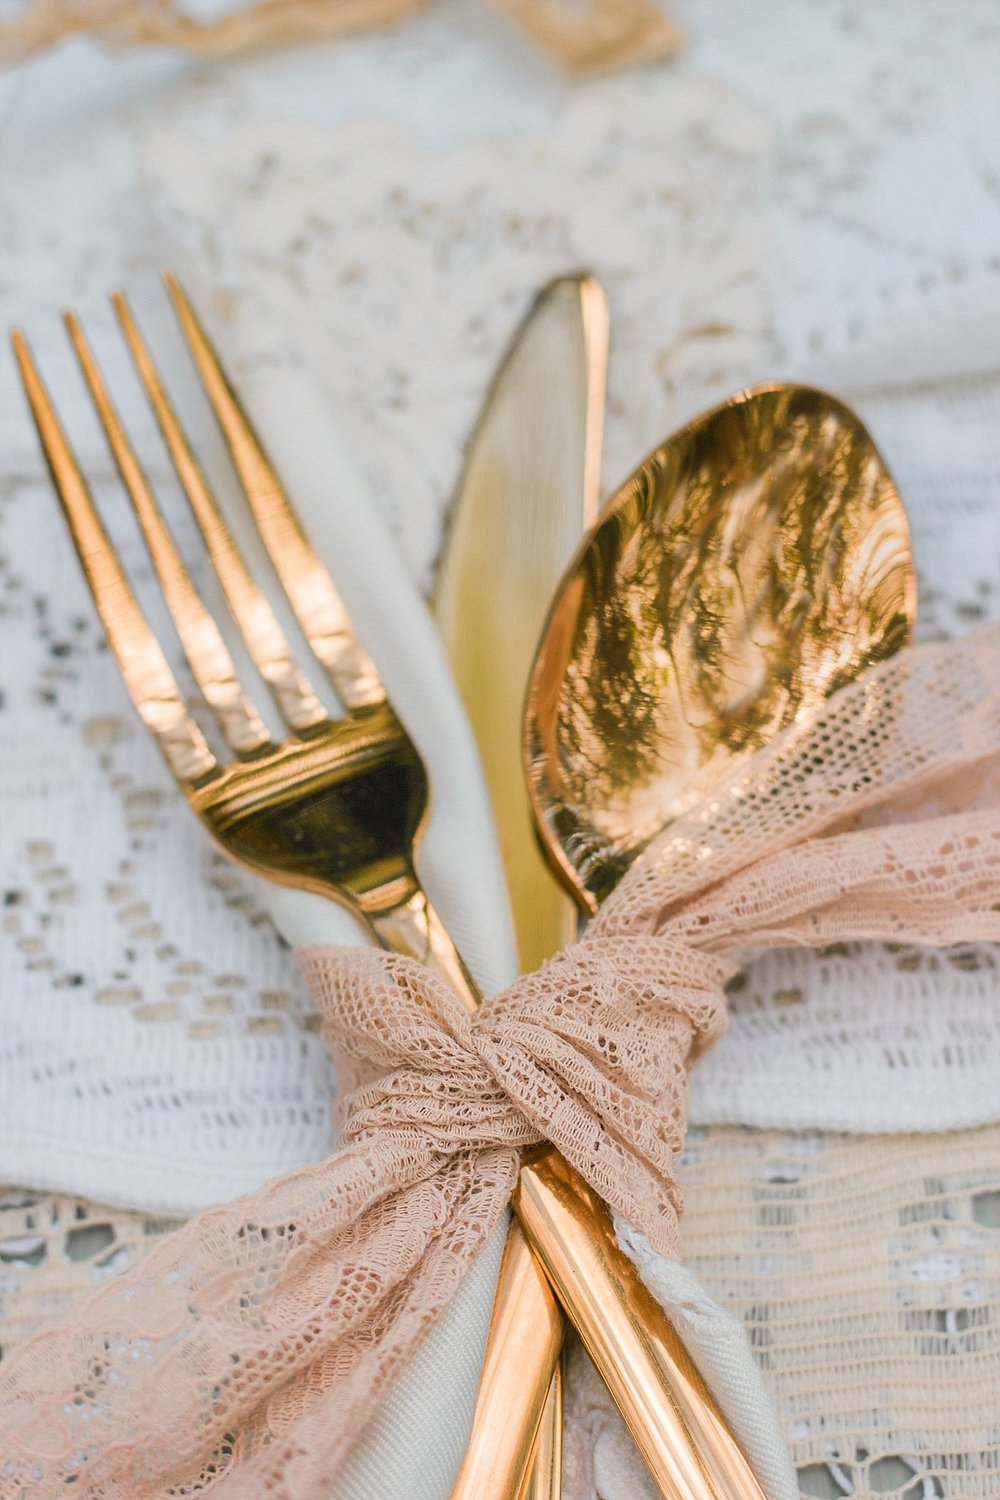 Vintage Amy Wedding Styling-Whimsical Woodland Vintage Wedding Kent-Vintage Gold Cutlery Wedding